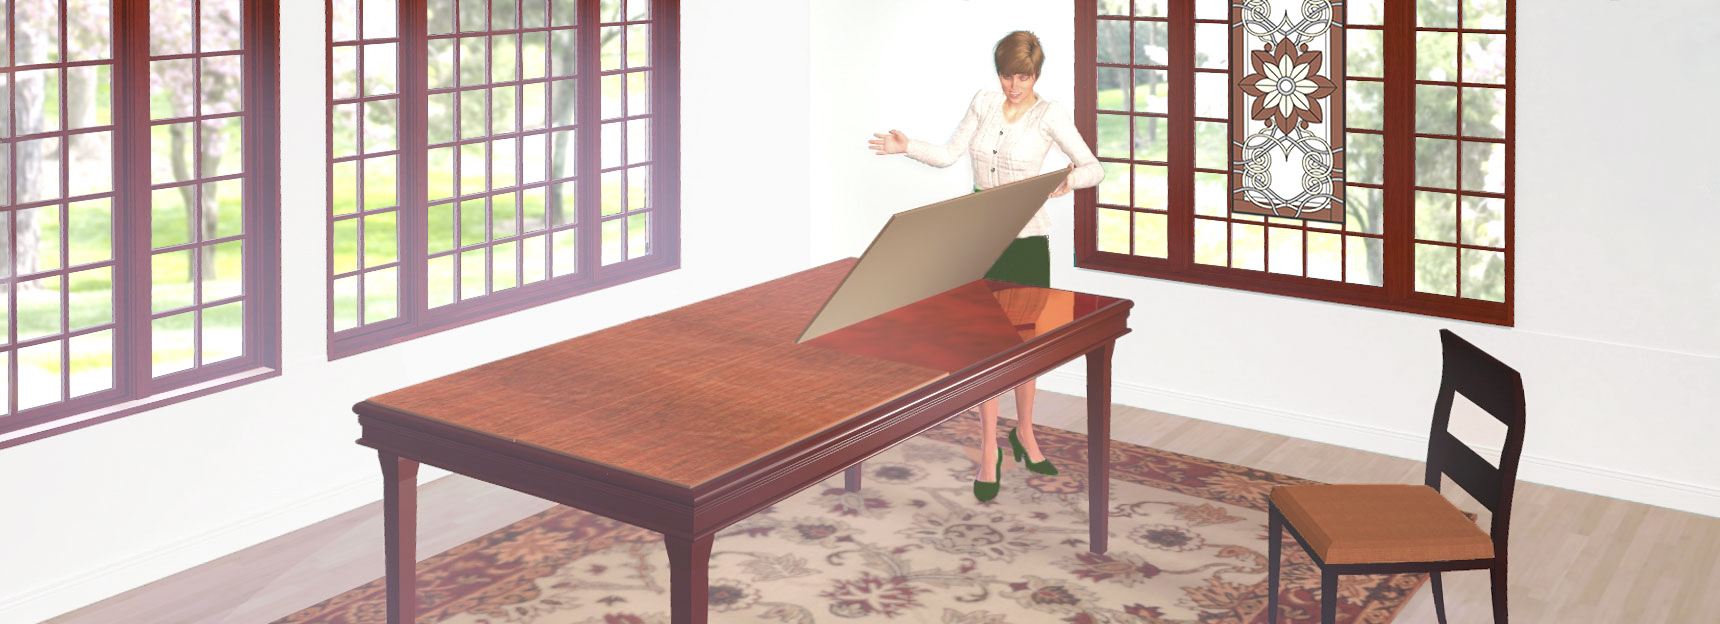 Table pad for